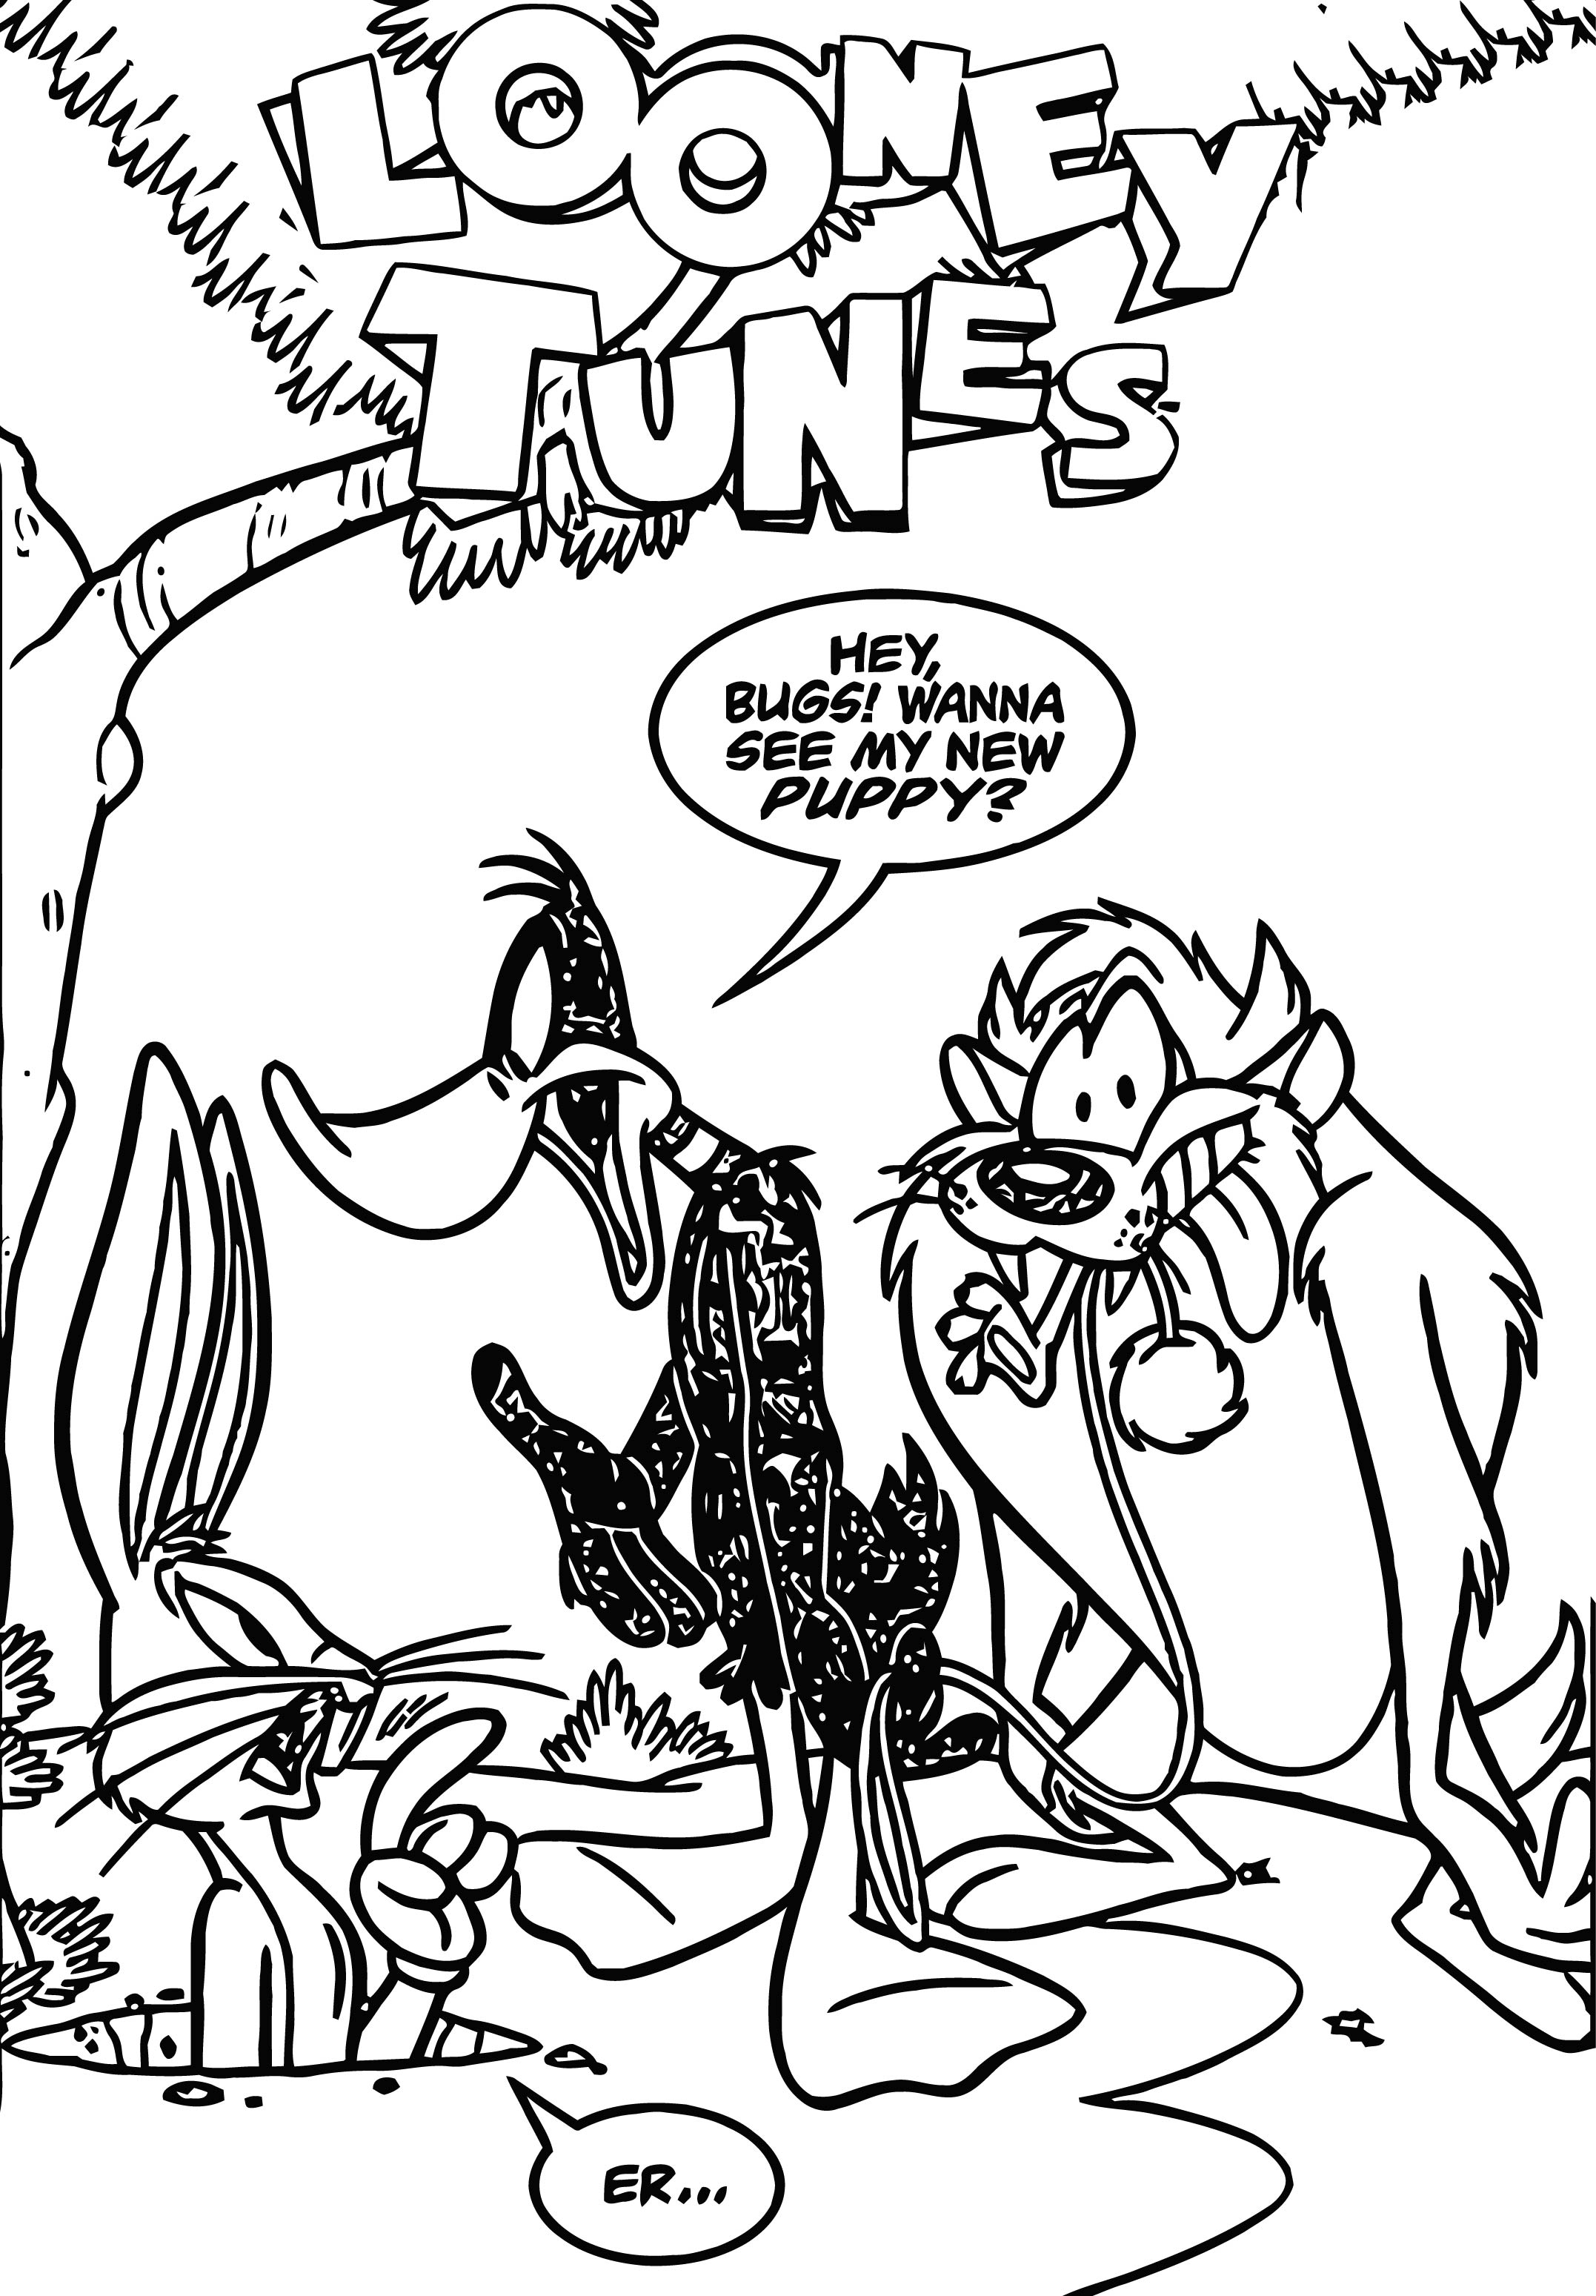 free looney tunes themed coloring pages | Looney Tunes Vol 1 61 The Looney Tunes Show Coloring Page ...